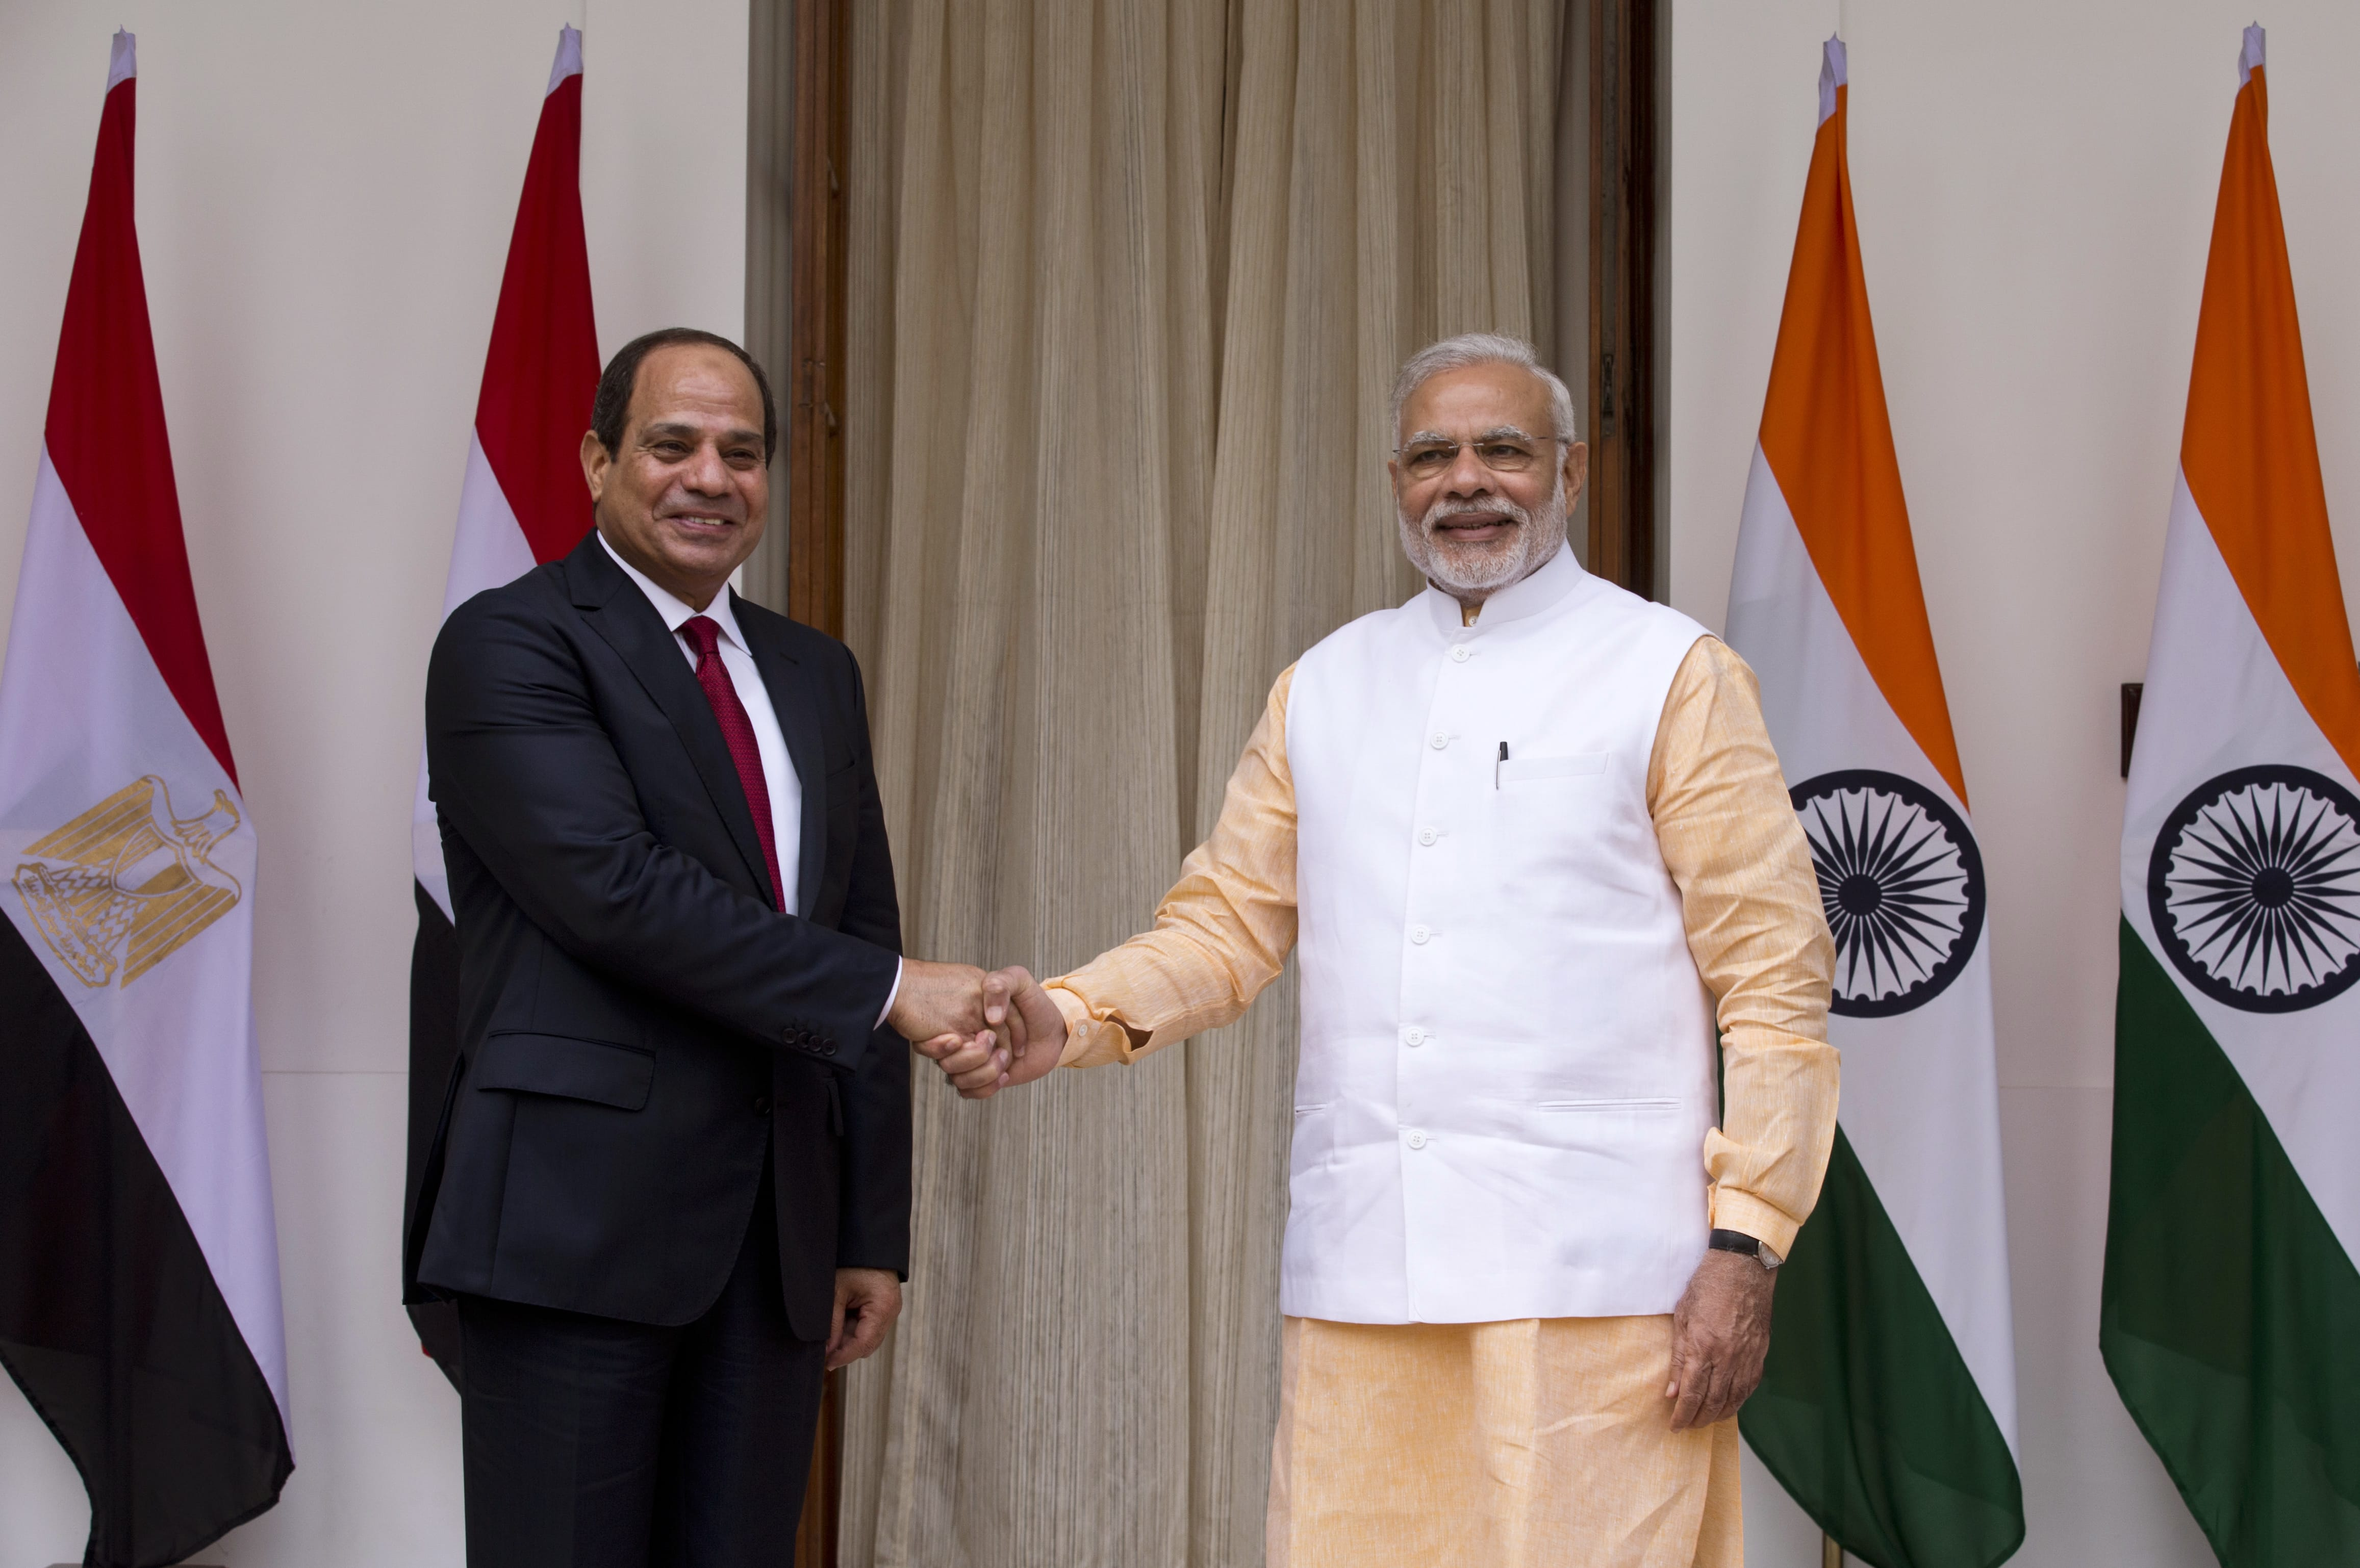 India and Egypt: Economic Reconstruction and Stabilization